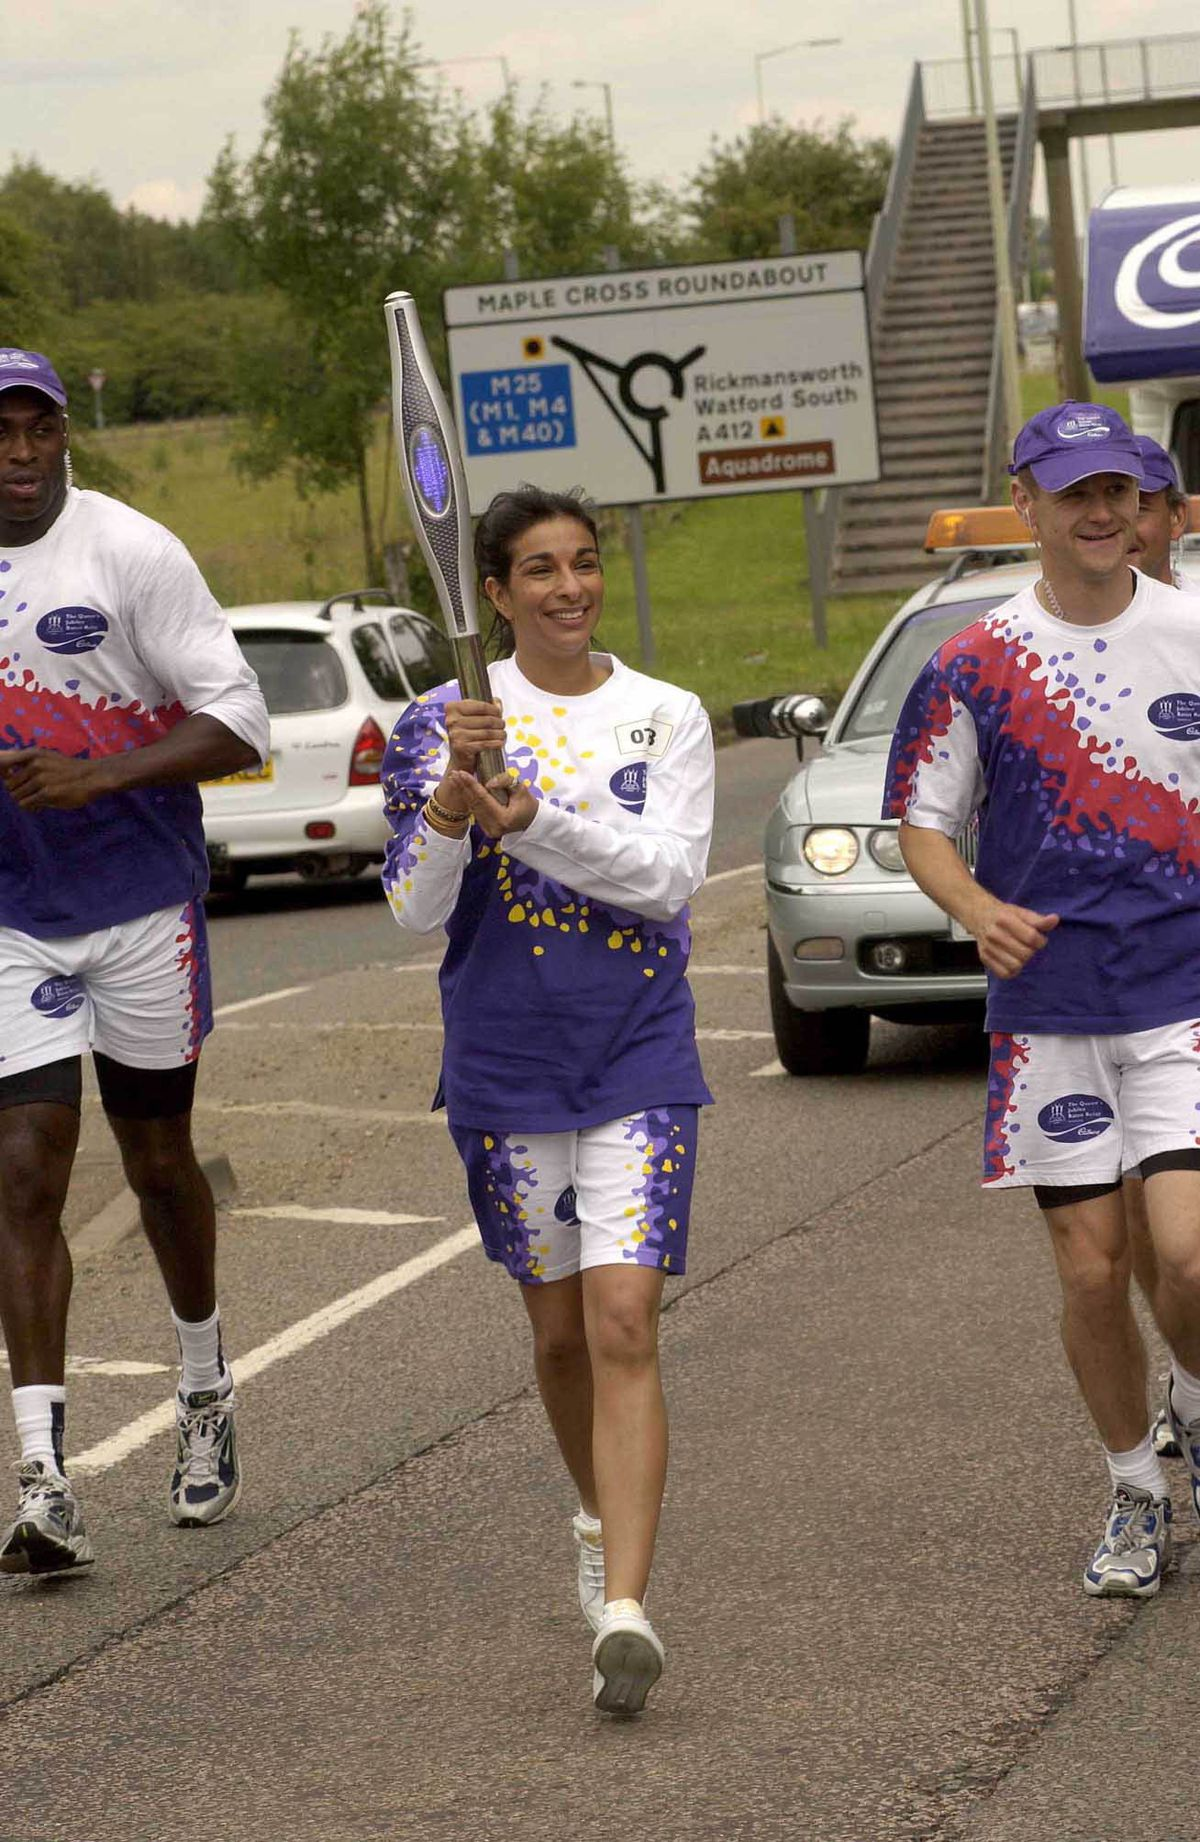 Shobna took part in The Queen's Jubilee Baton Relay for the 2002 Commonweath Games in Manchester